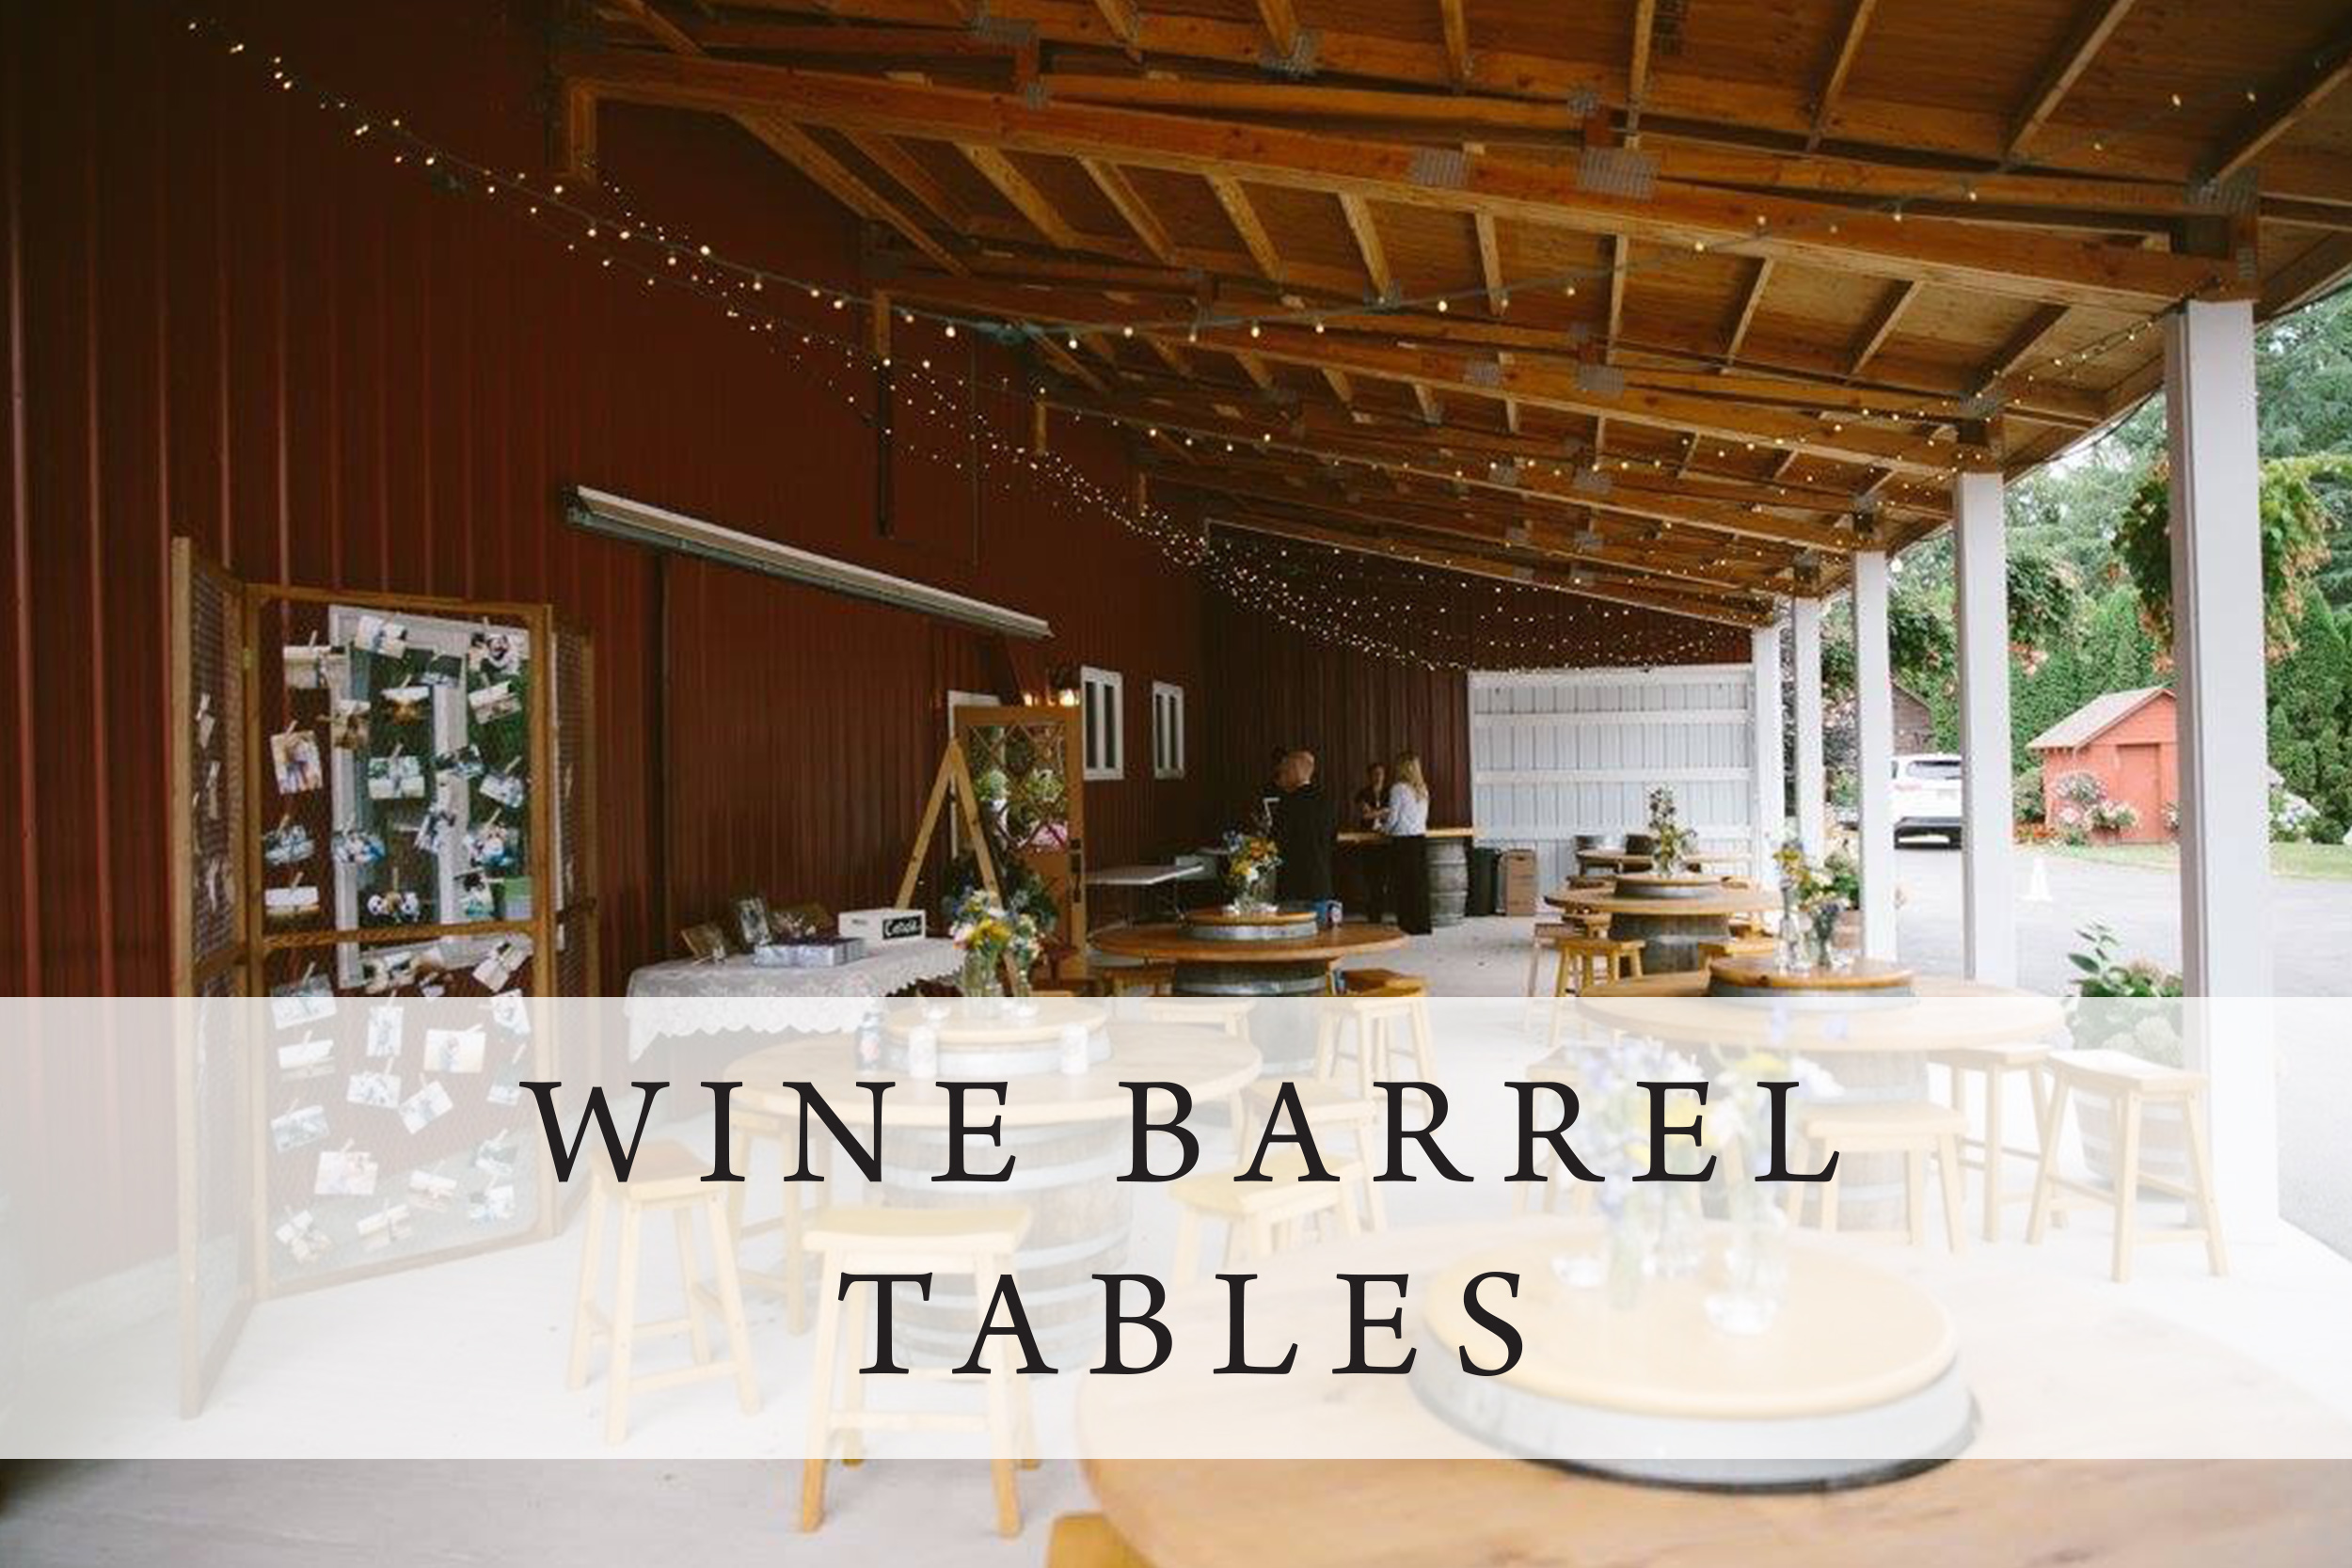 Wine Barrel Tables.jpg